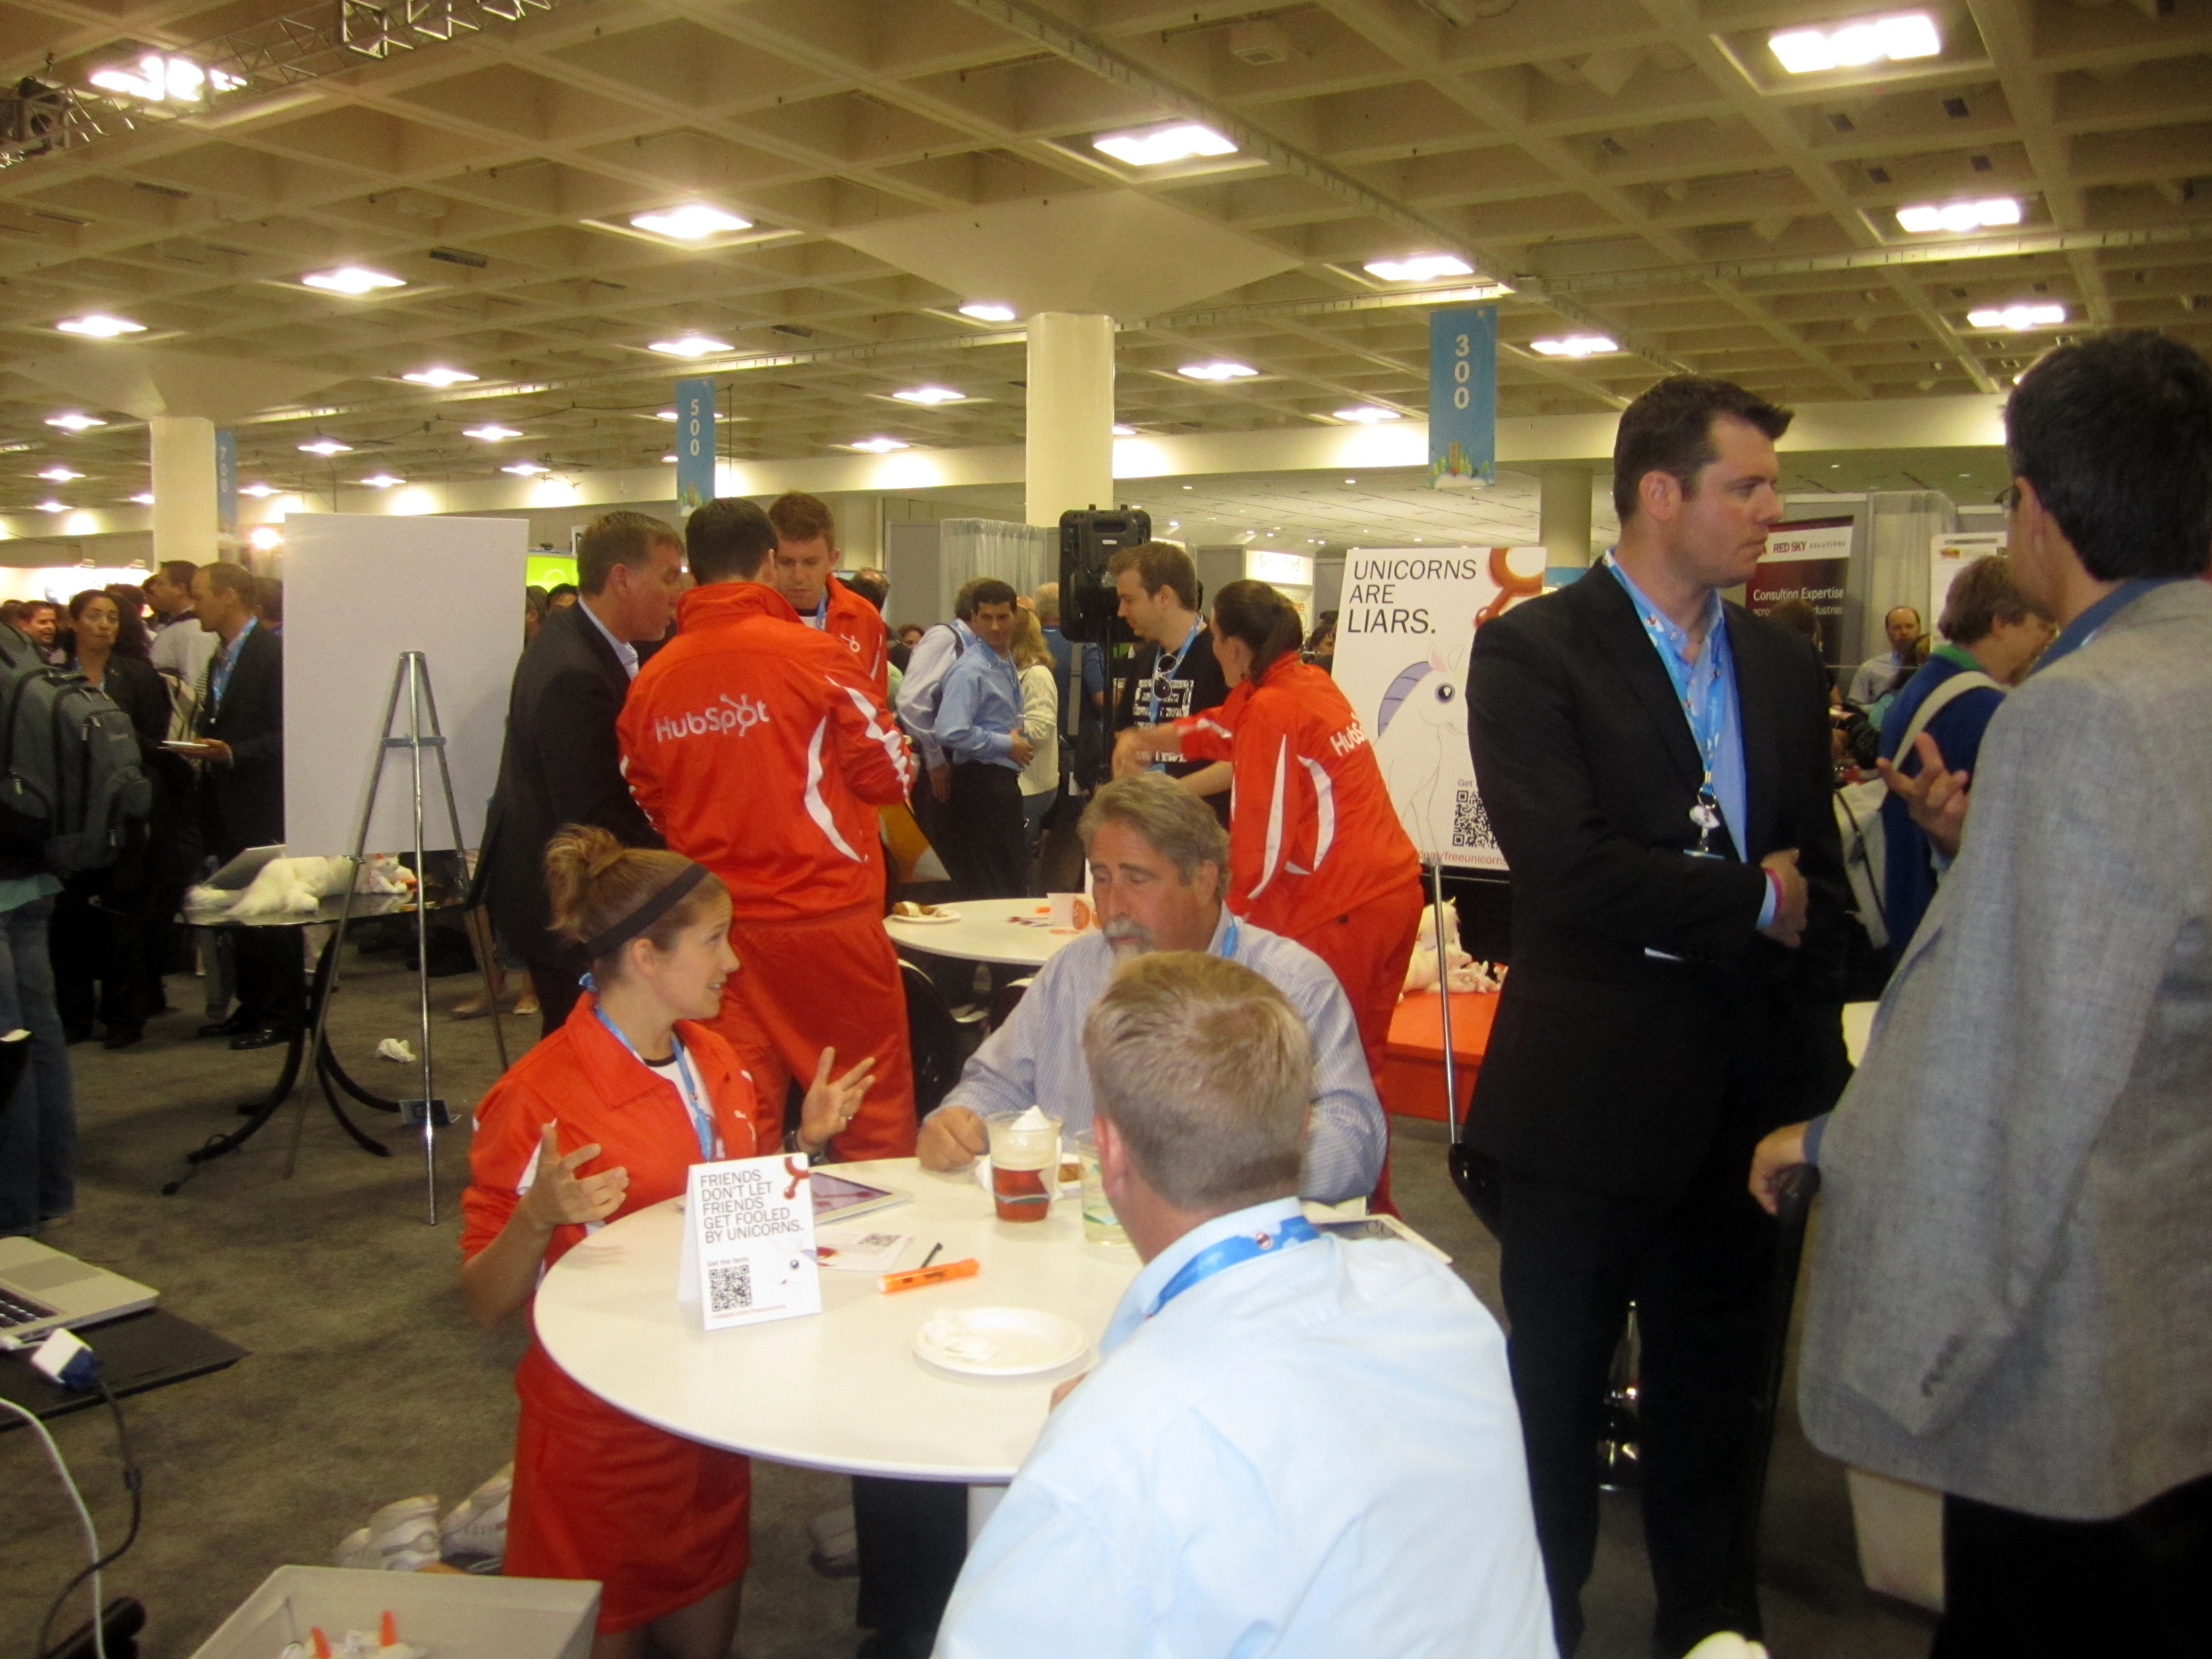 2011 08 26 to 2011 09 02 Dreamforce 075